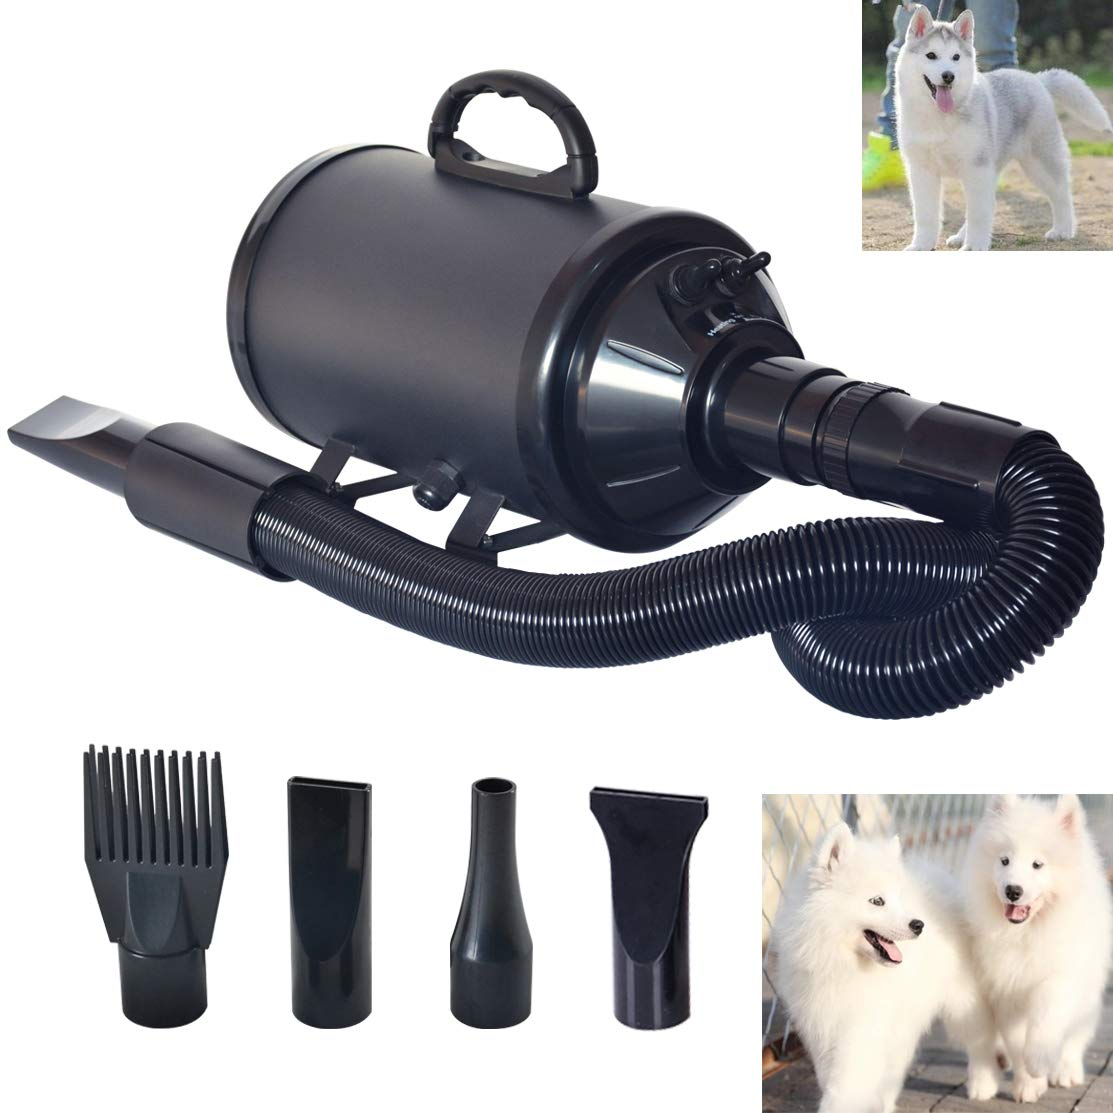 C&W Dog Dryer Noise Reduction Pet Dryer with Heater Dog Blower 3.2HP Adjustable Speed and Temperature Spring Hose and 4 Different Nozzles Black Color by C&W